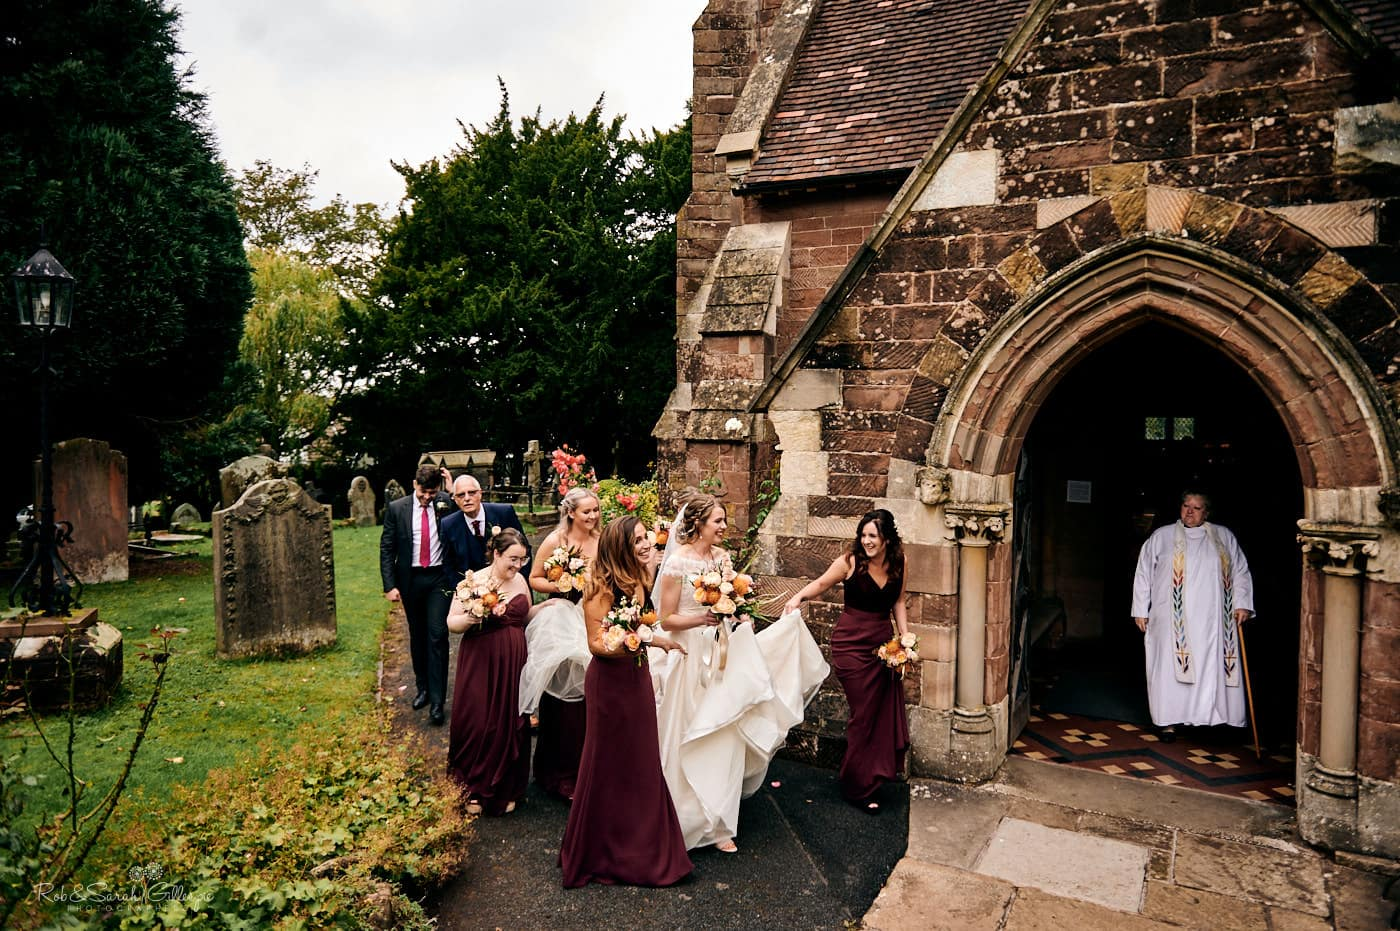 Bride and bridesmaids walk to church entrance for wedding service with vicar waiting in doorway